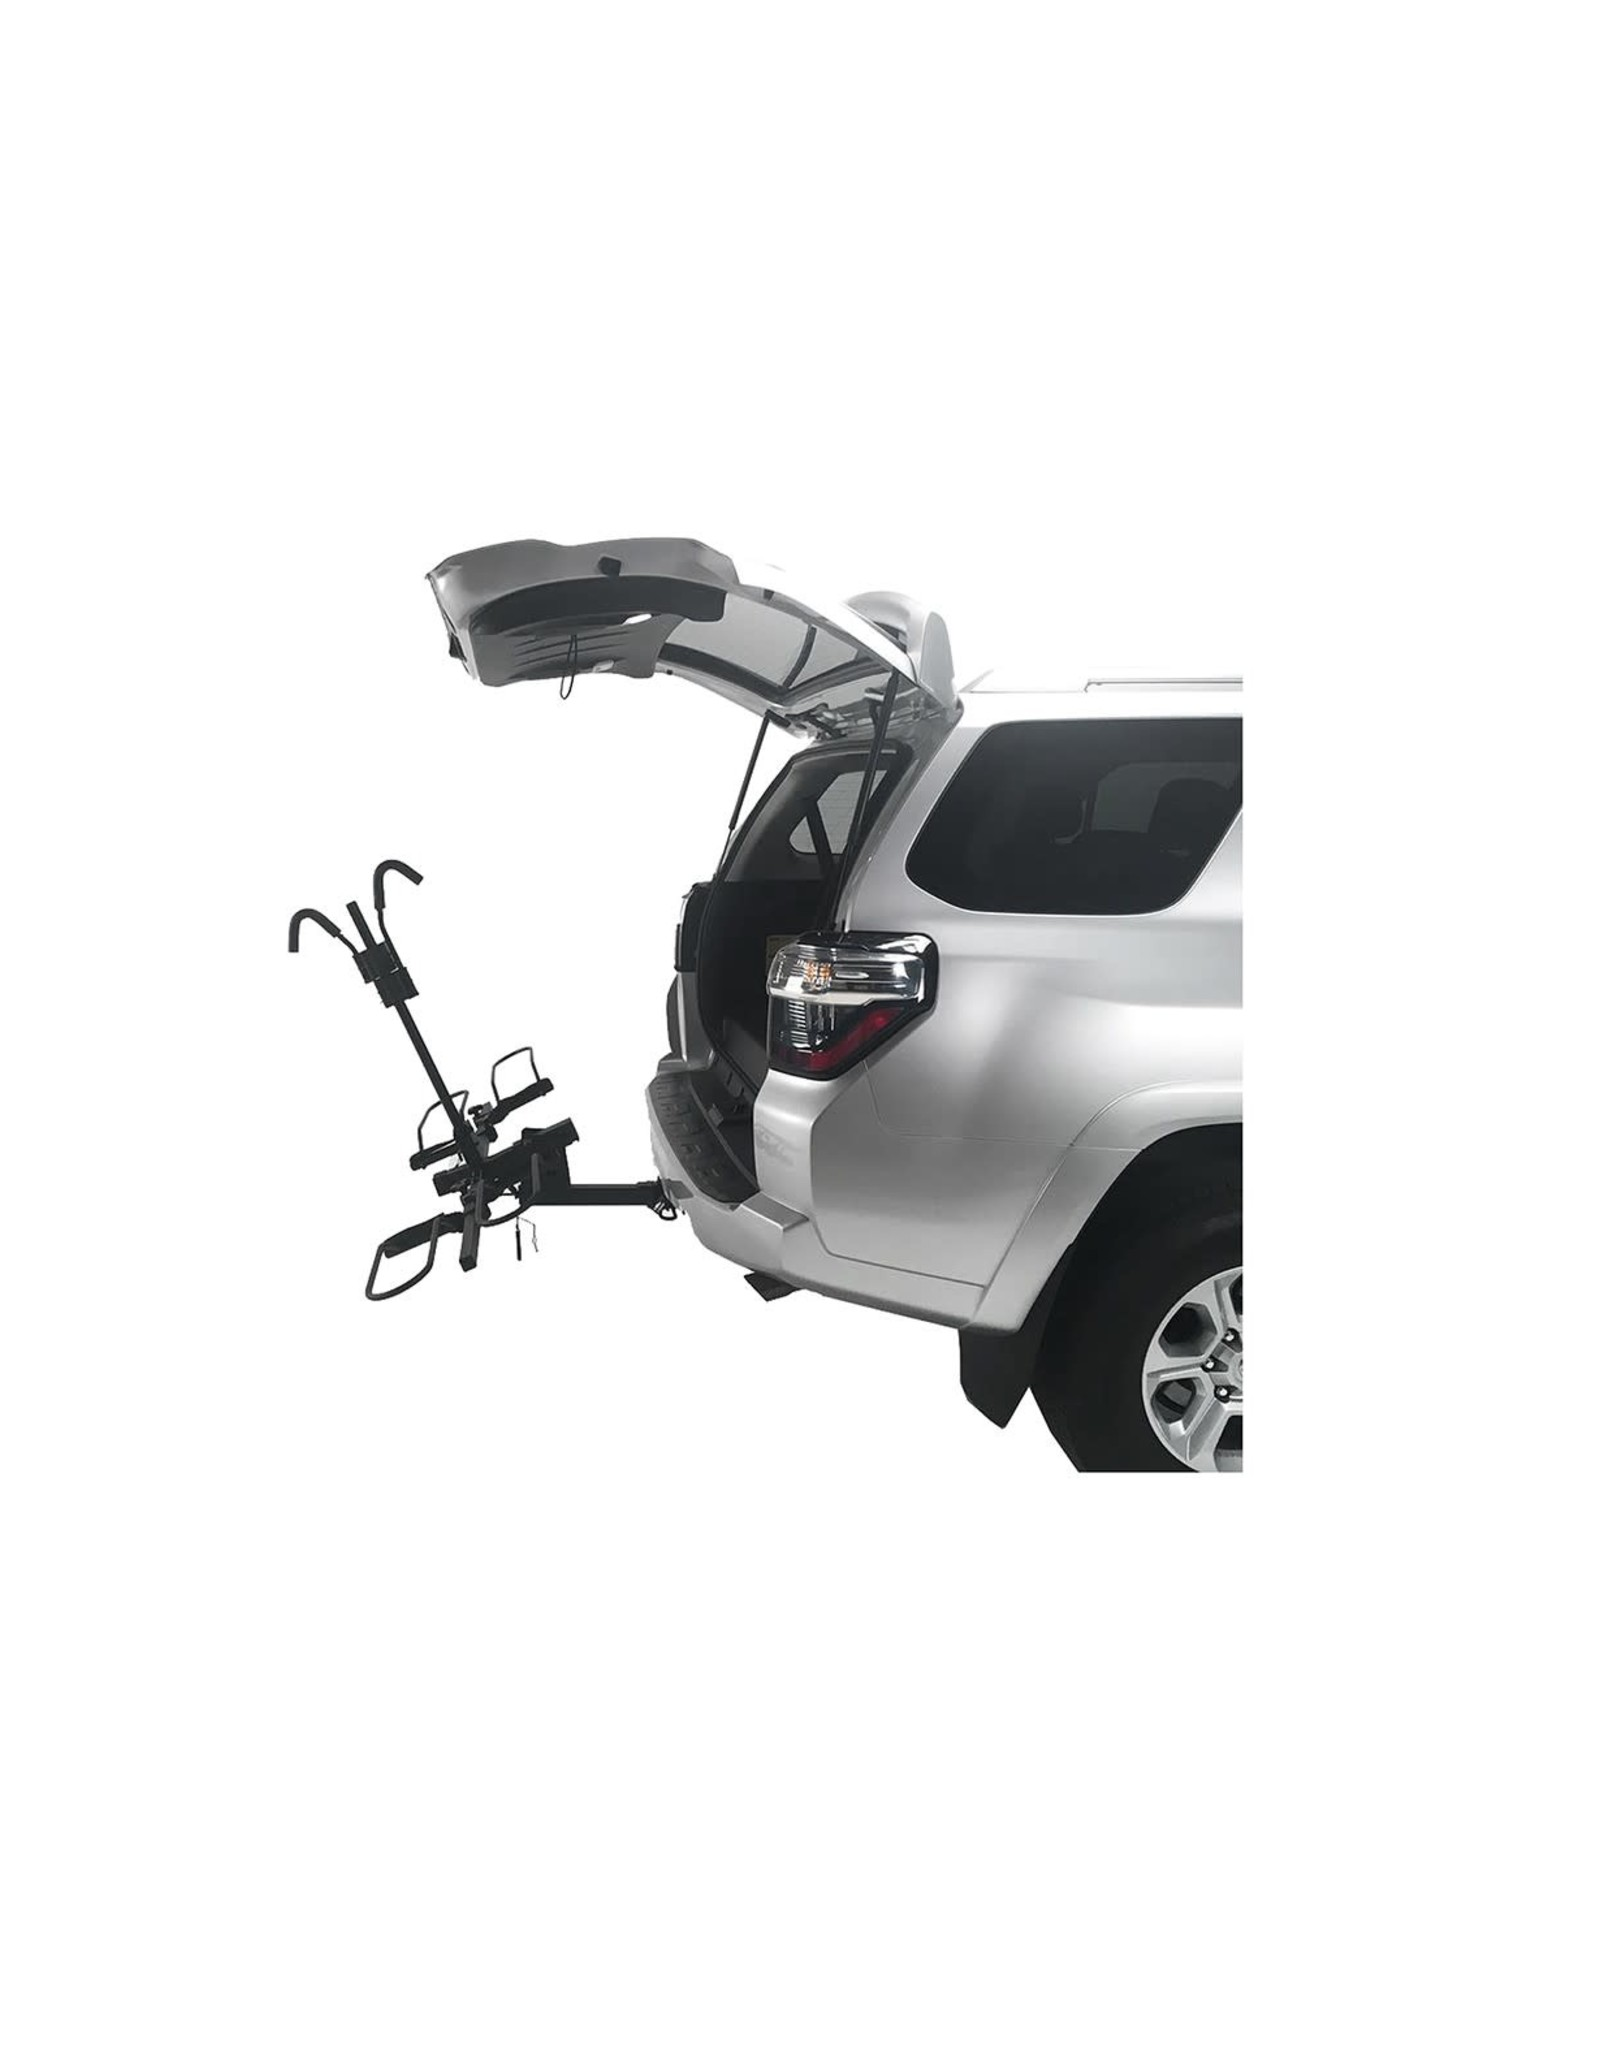 CAR RACK HOLYWD HR1560 SPT RDR SE 2B E-BIKE UP TO 5in TIRE 1-1/4in